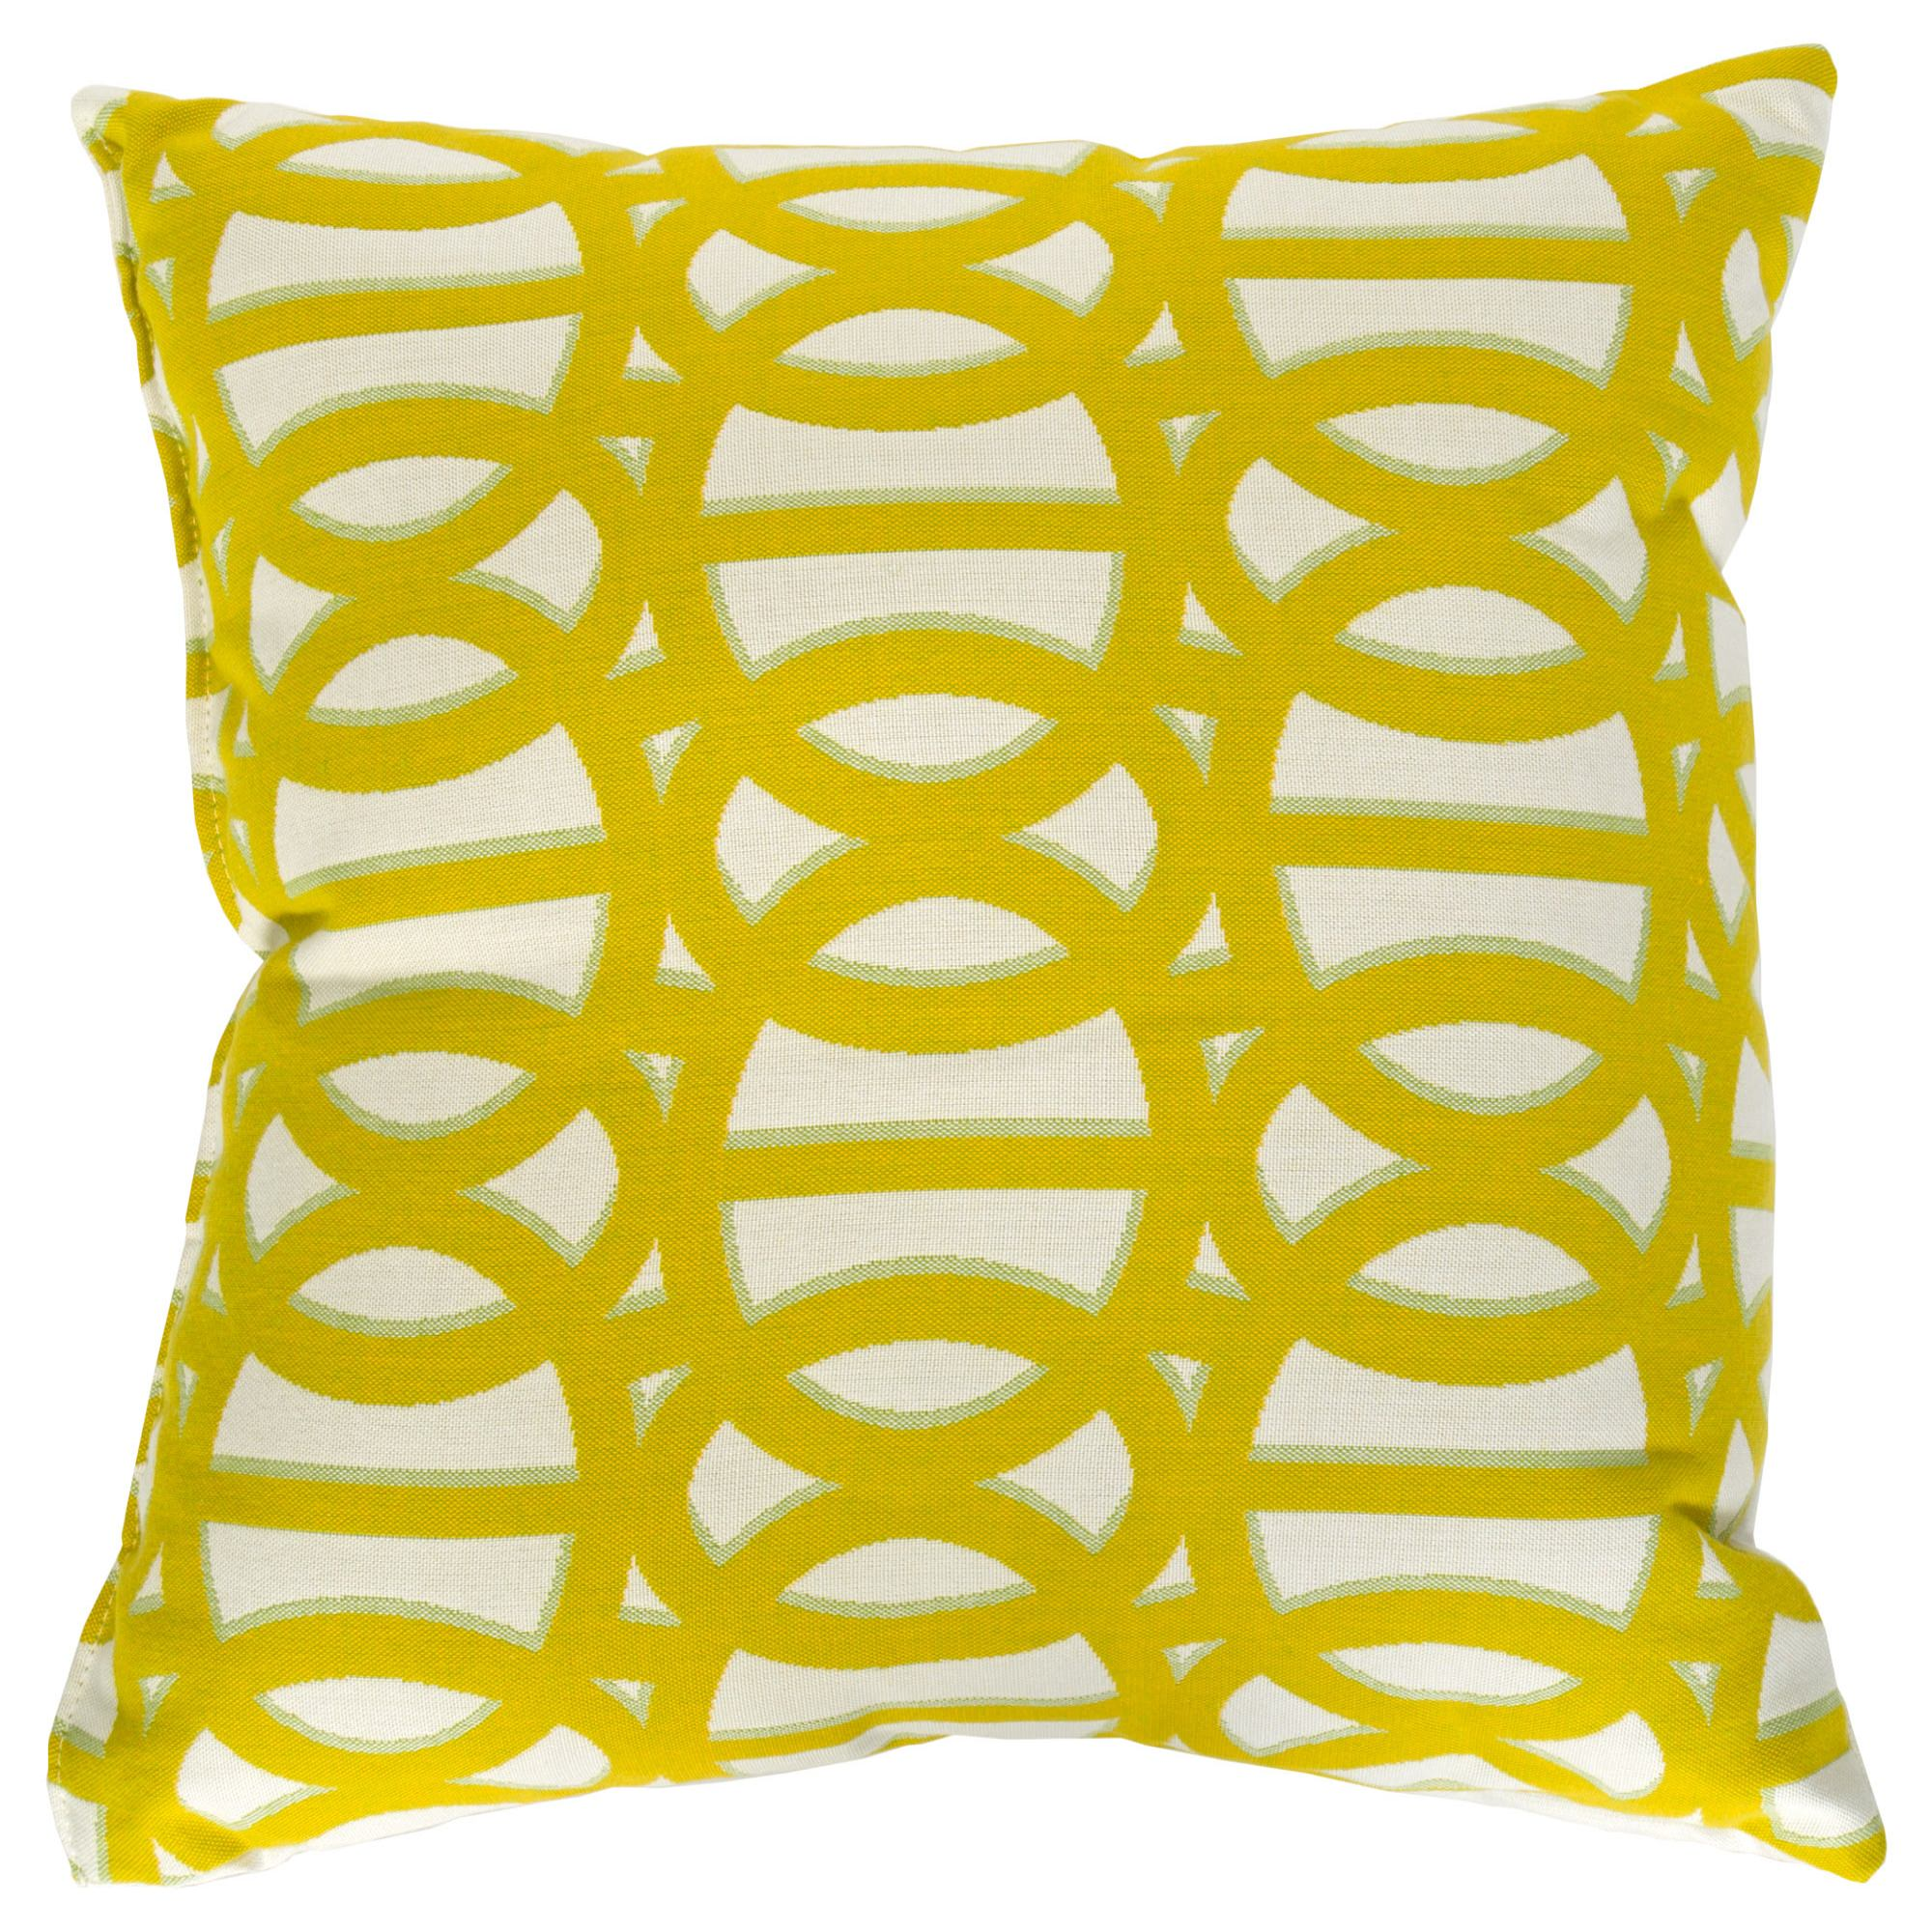 Beau Reflex II Citron Sunbrella Outdoor Throw Pillow